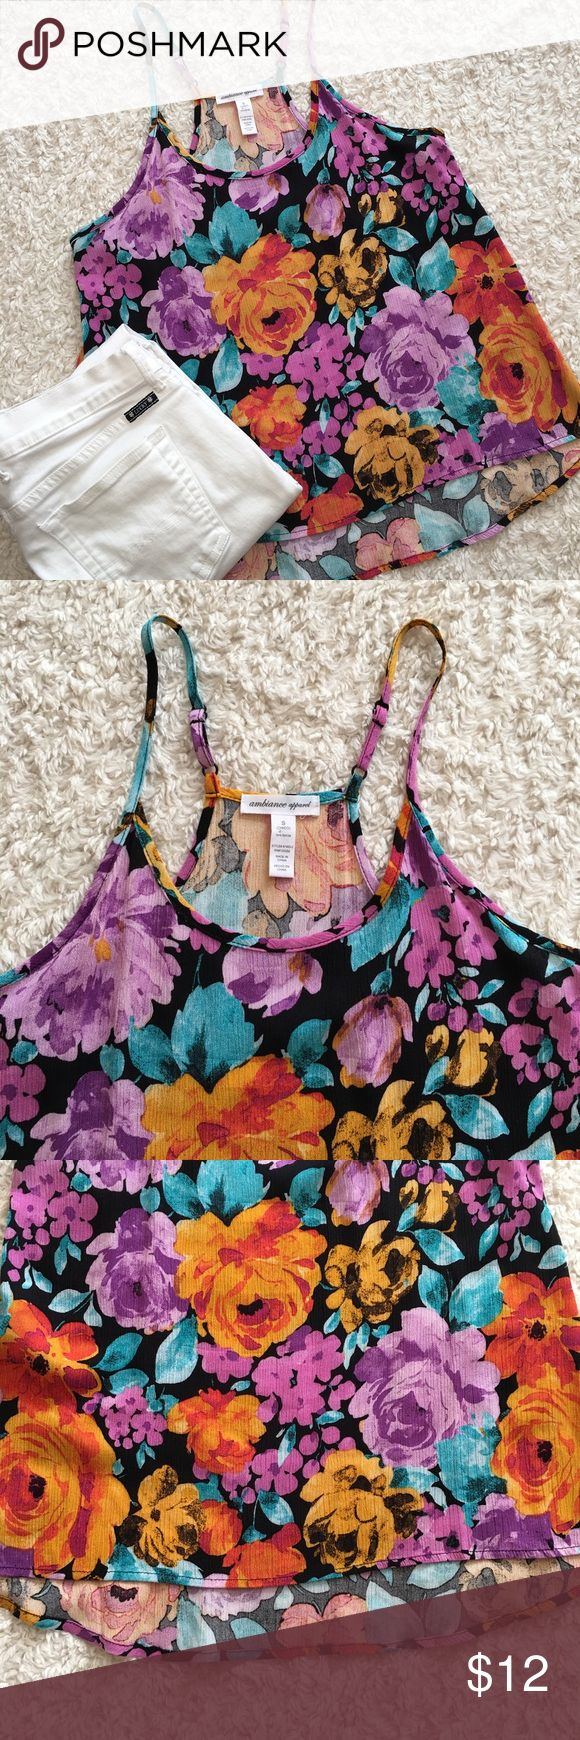 NWOT Floral Cami Floral cami NWOT. Straps are adjustable, and it falls slightly lower in the back. Fits like a typical small. 100% rayon. Ambiance Apparel Tops Camisoles